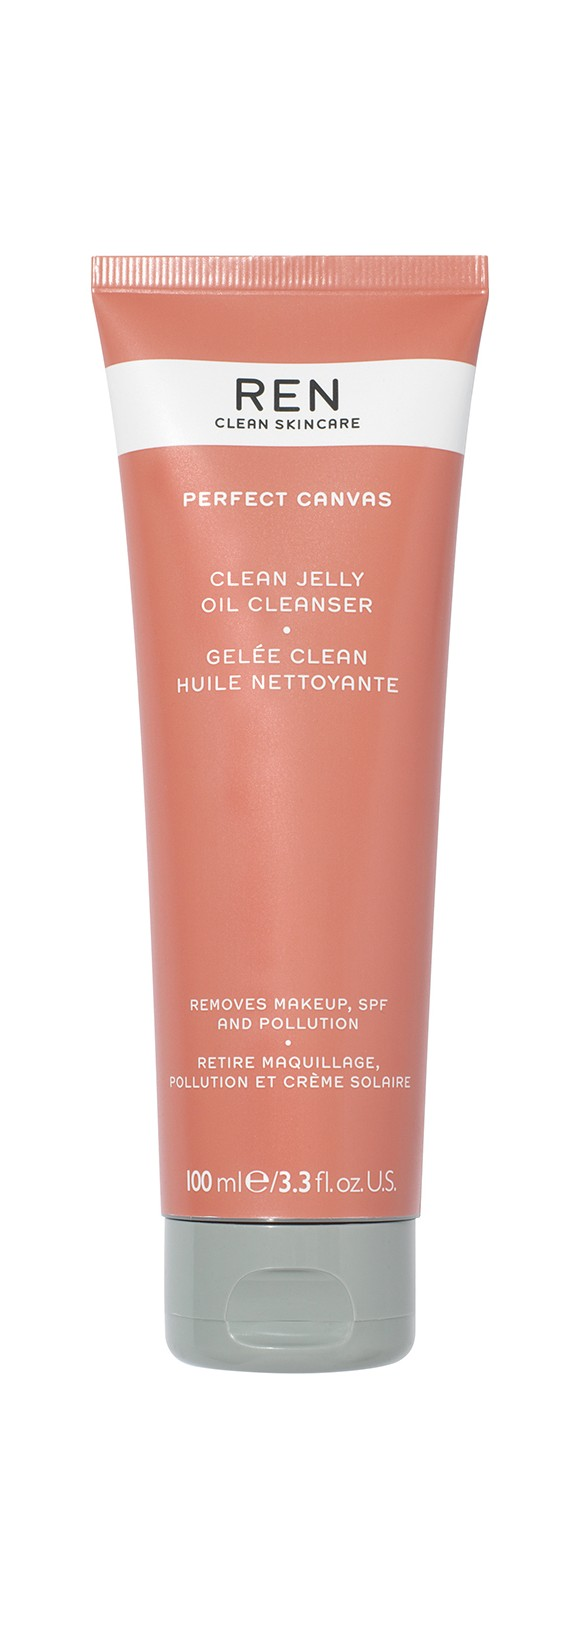 REN - Perfect Canvas Jelly Oil Cleanser 100 ml